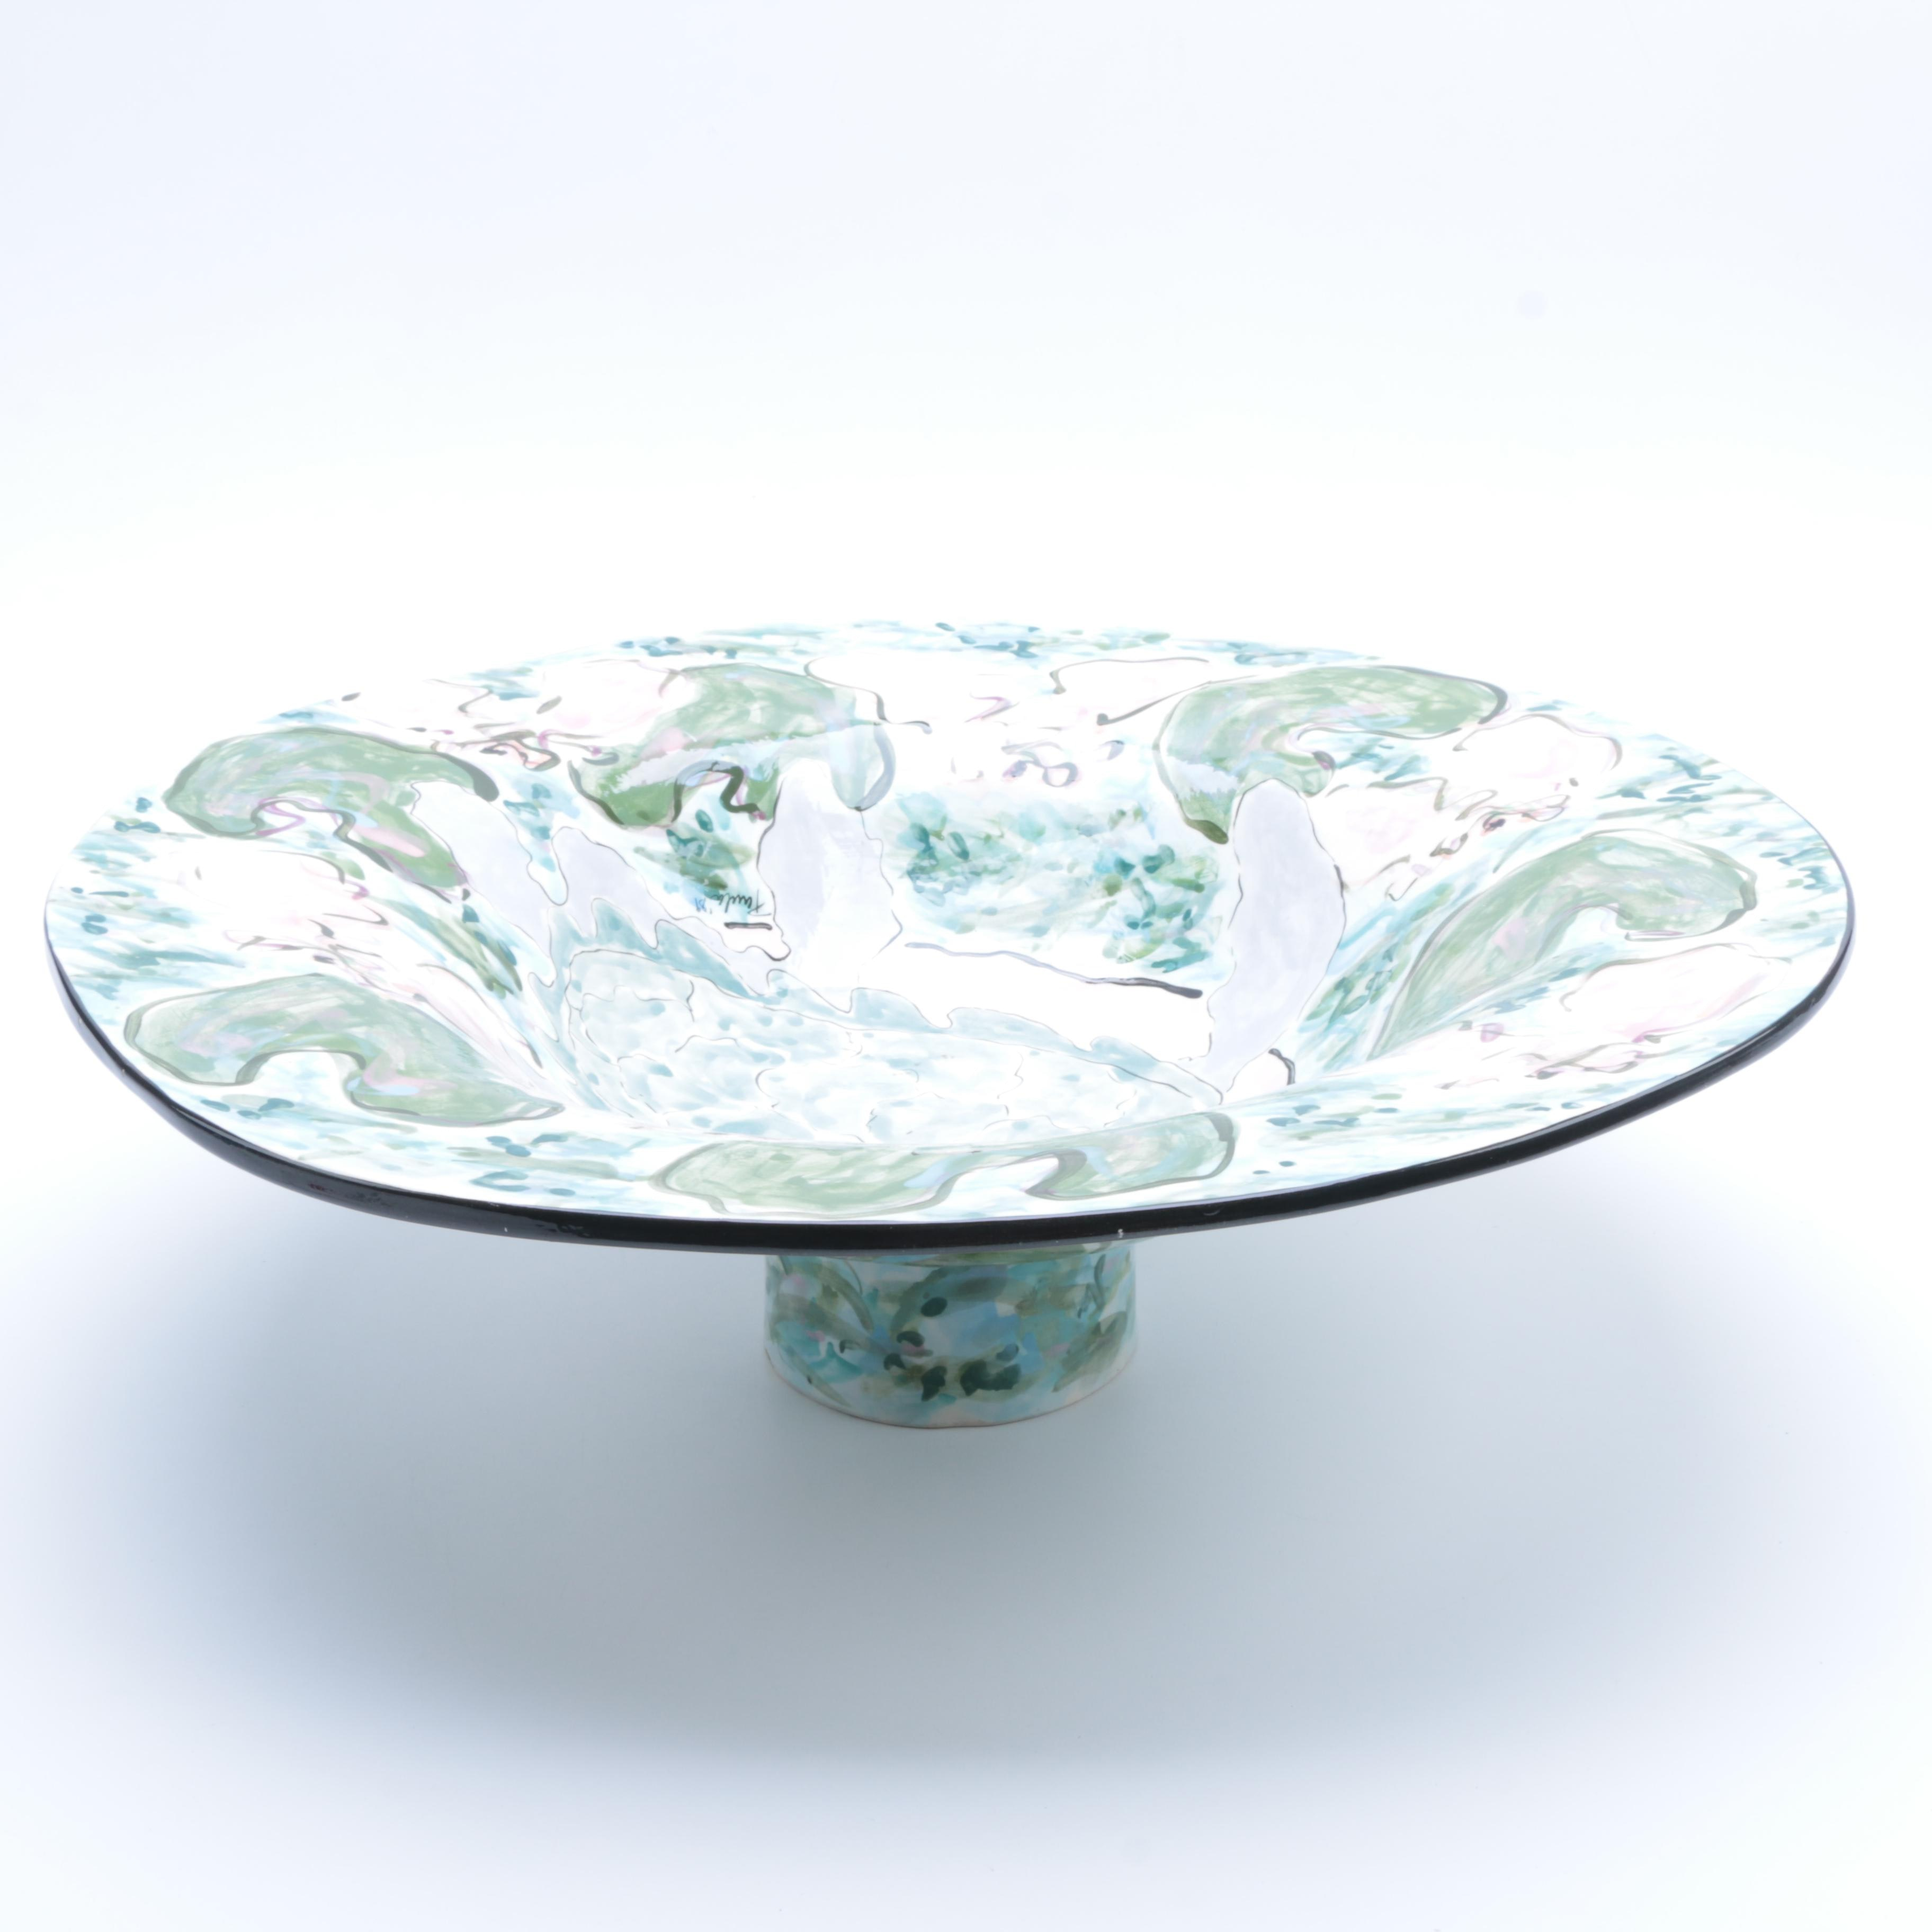 Hand Thrown Hand-Painted Porcelain Centerpiece Bowl